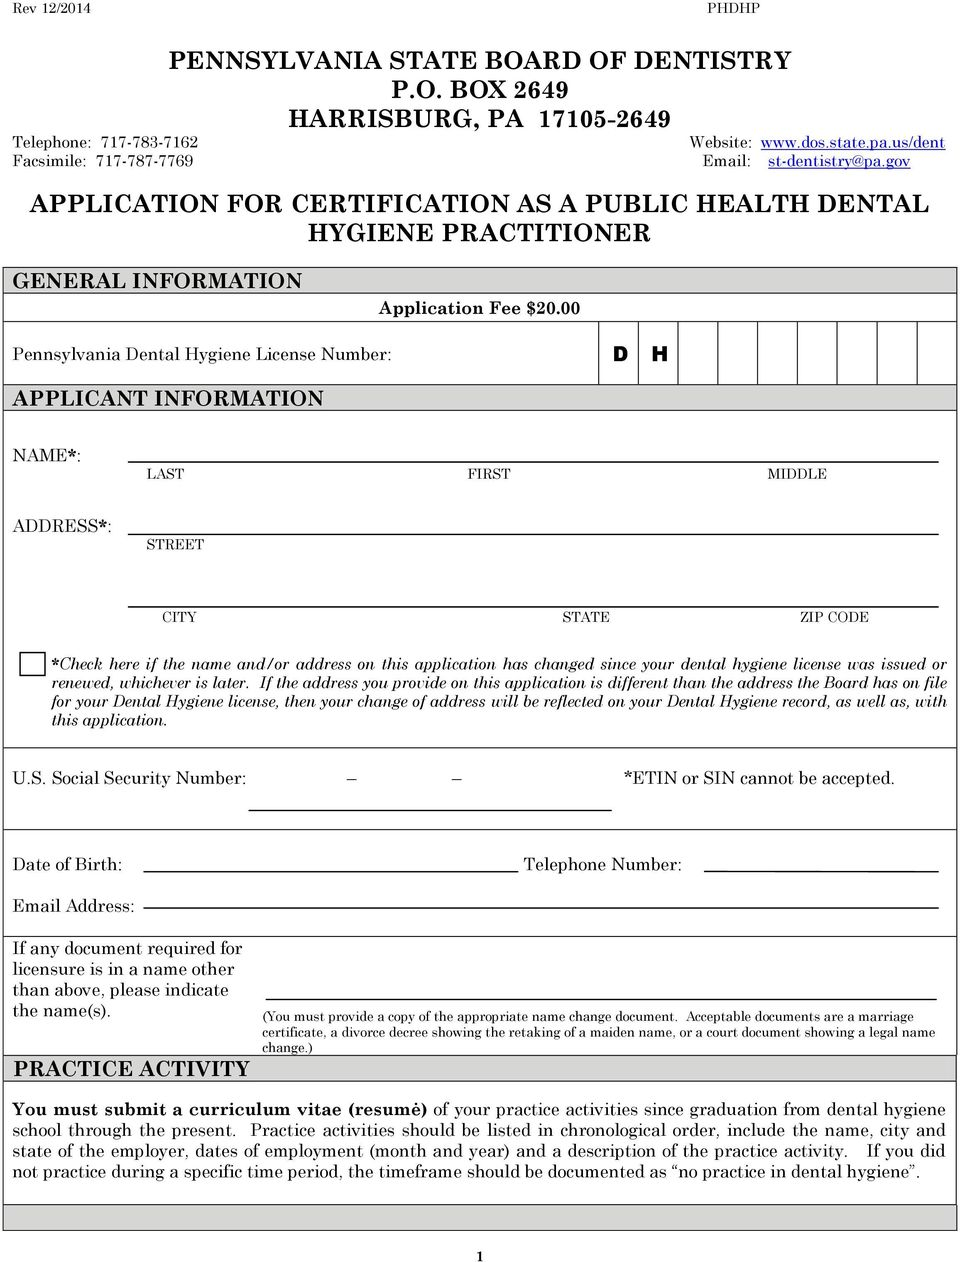 00 Pennsylvania Dental Hygiene License Number: D H APPLICANT INFORMATION NAME*: LAST FIRST MIDDLE ADDRESS*: STREET CITY STATE ZIP CODE *Check here if the name and/or address on this application has